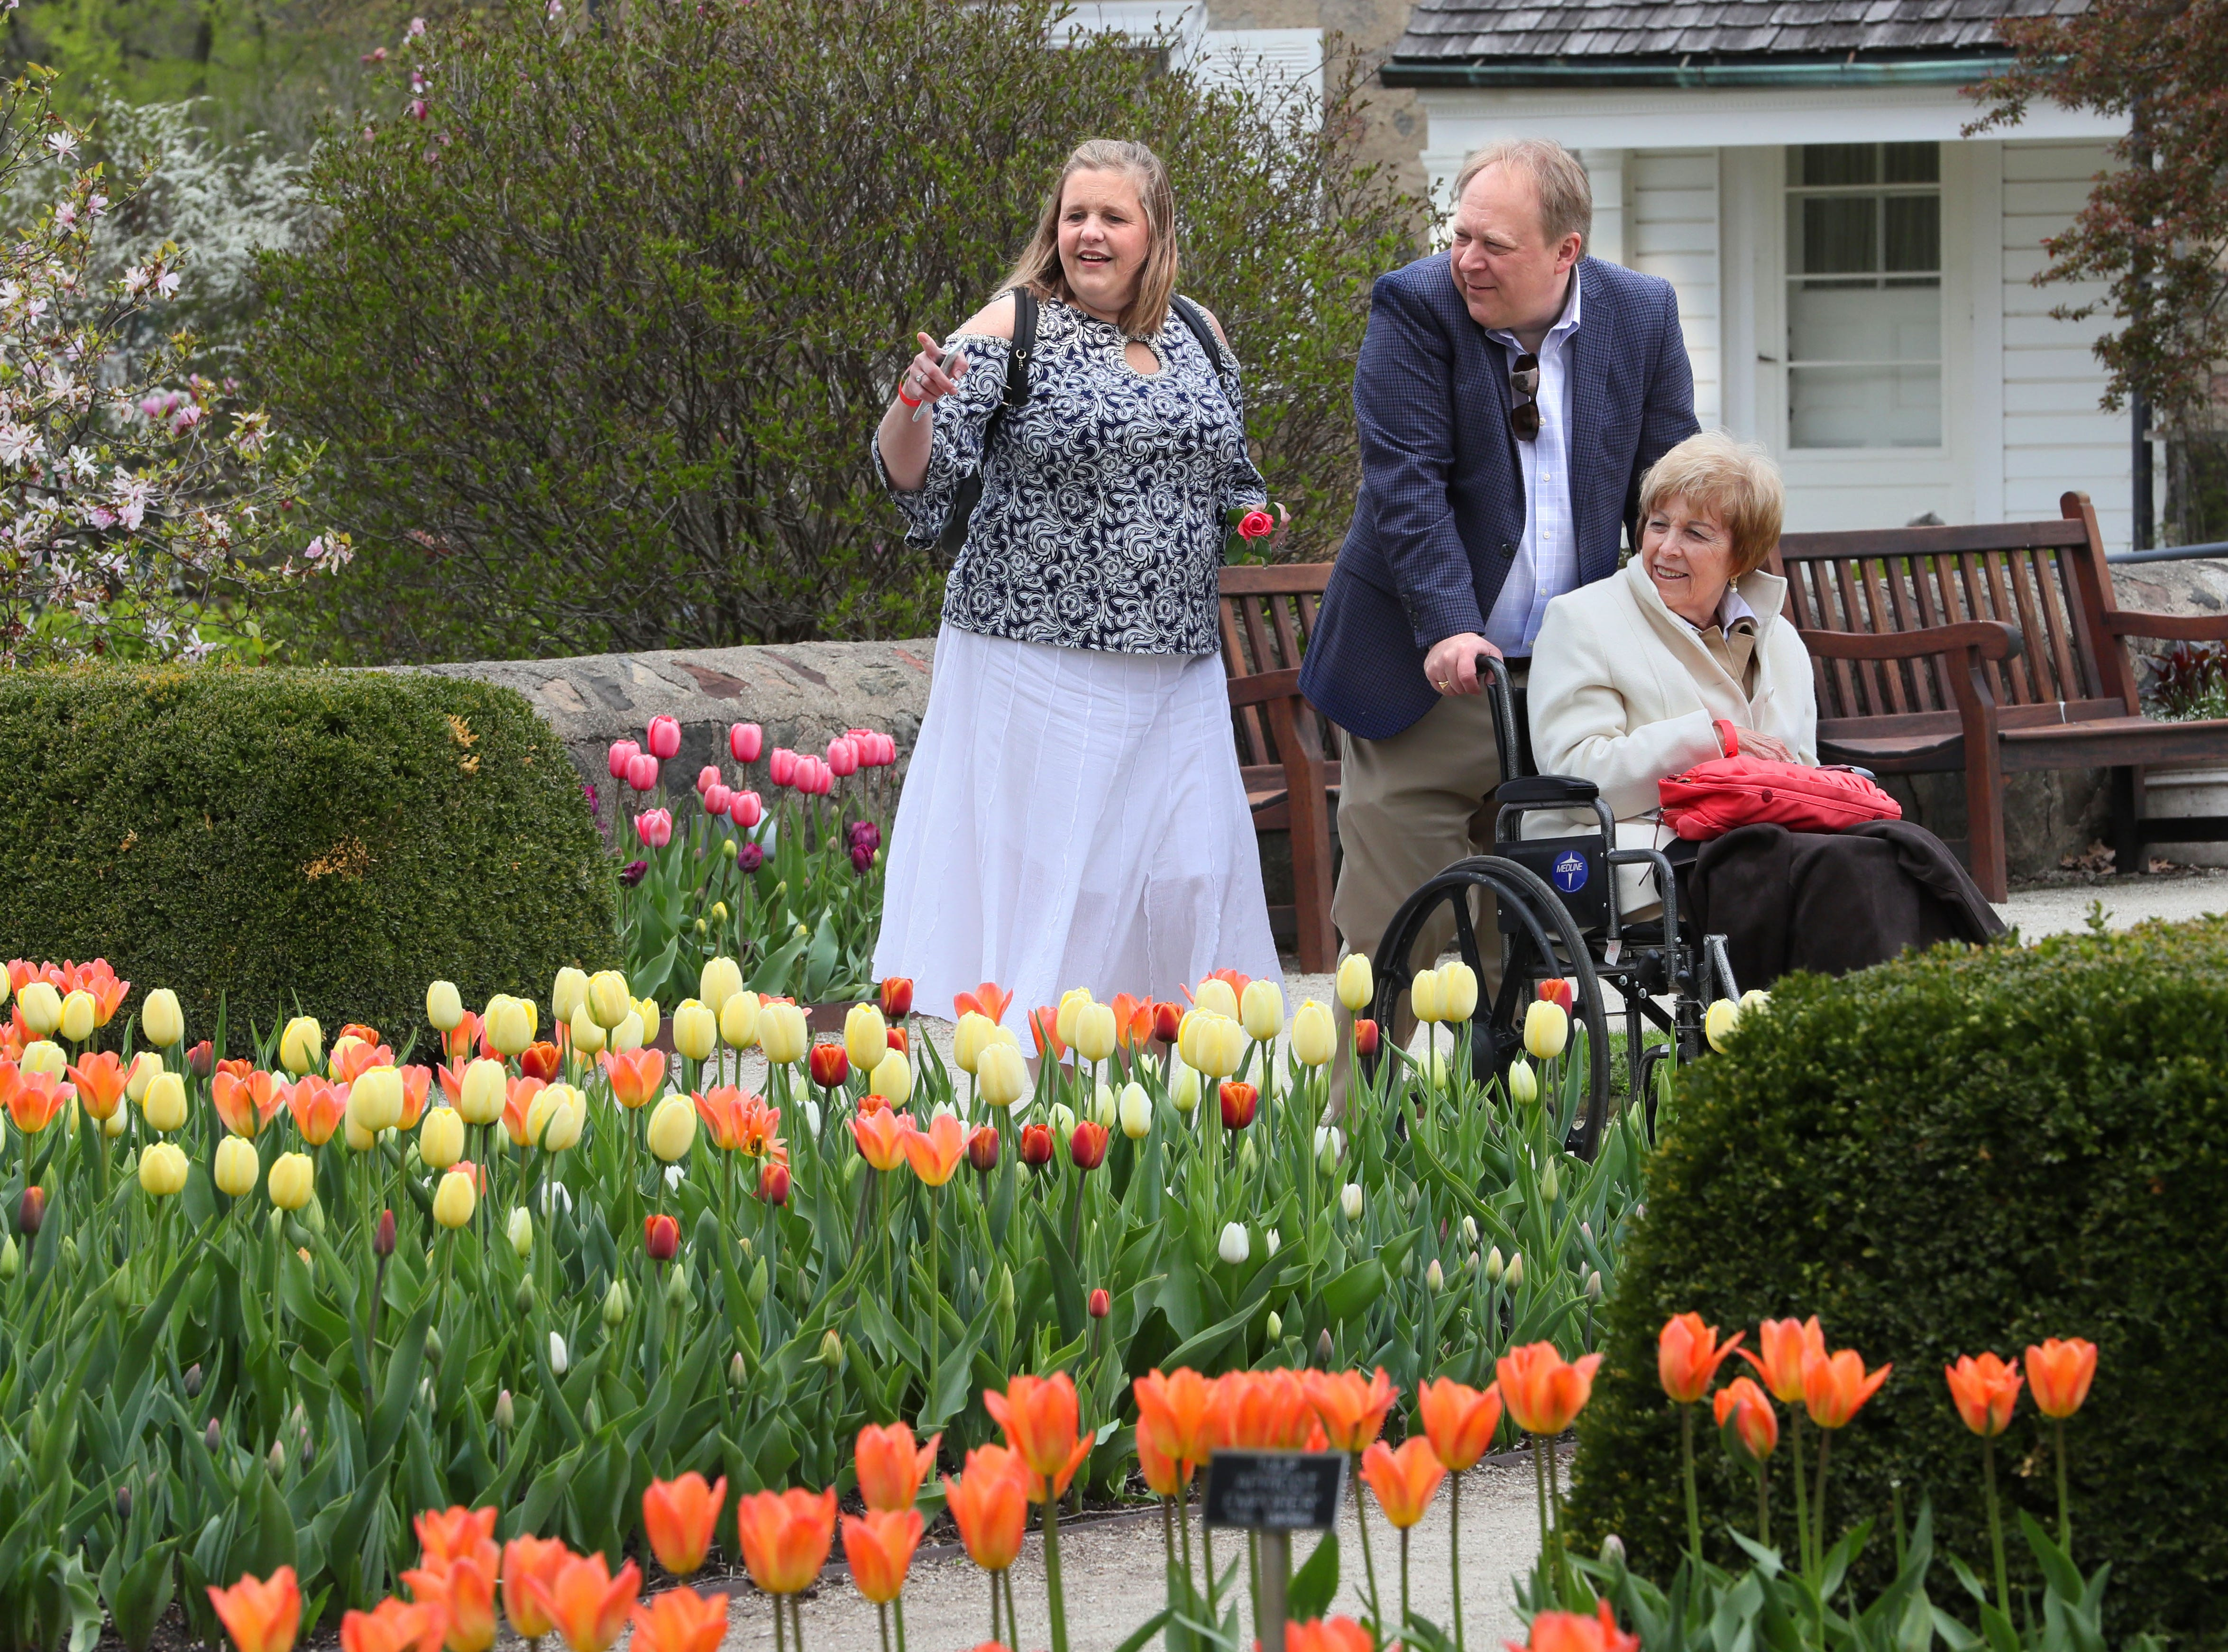 Shara Wagner Grover, left, and husband Stephen Wagner, both of Mukwonago, pointed out flowers to her mother, Ginger Grover of Lake Geneva, as they toured the gardens.